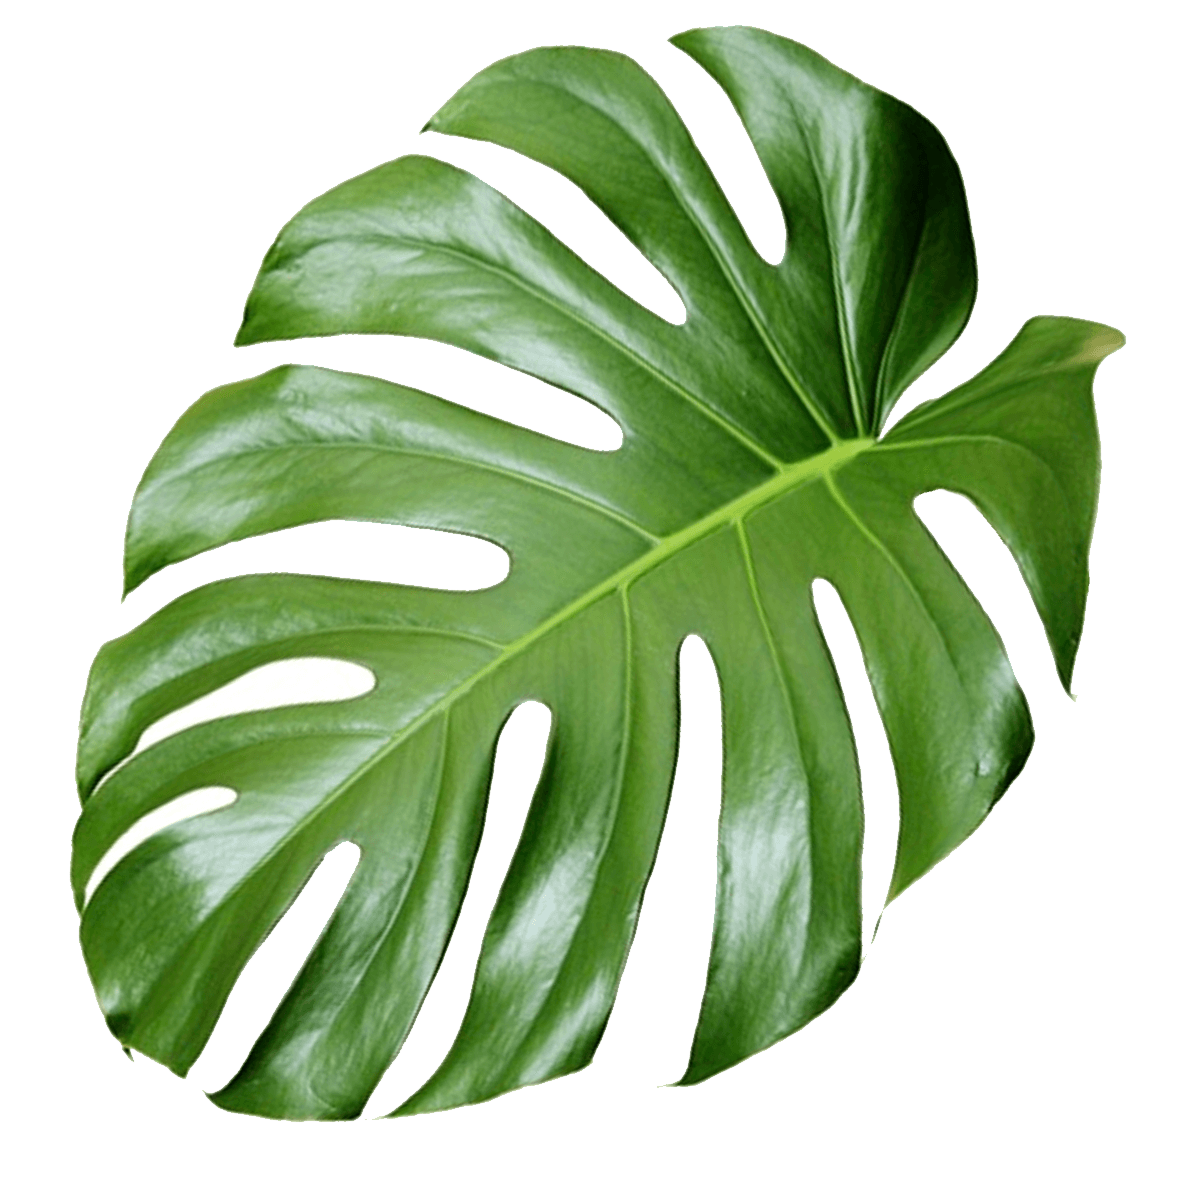 Aesthetic plant png. Aesthetics monstera transprent free